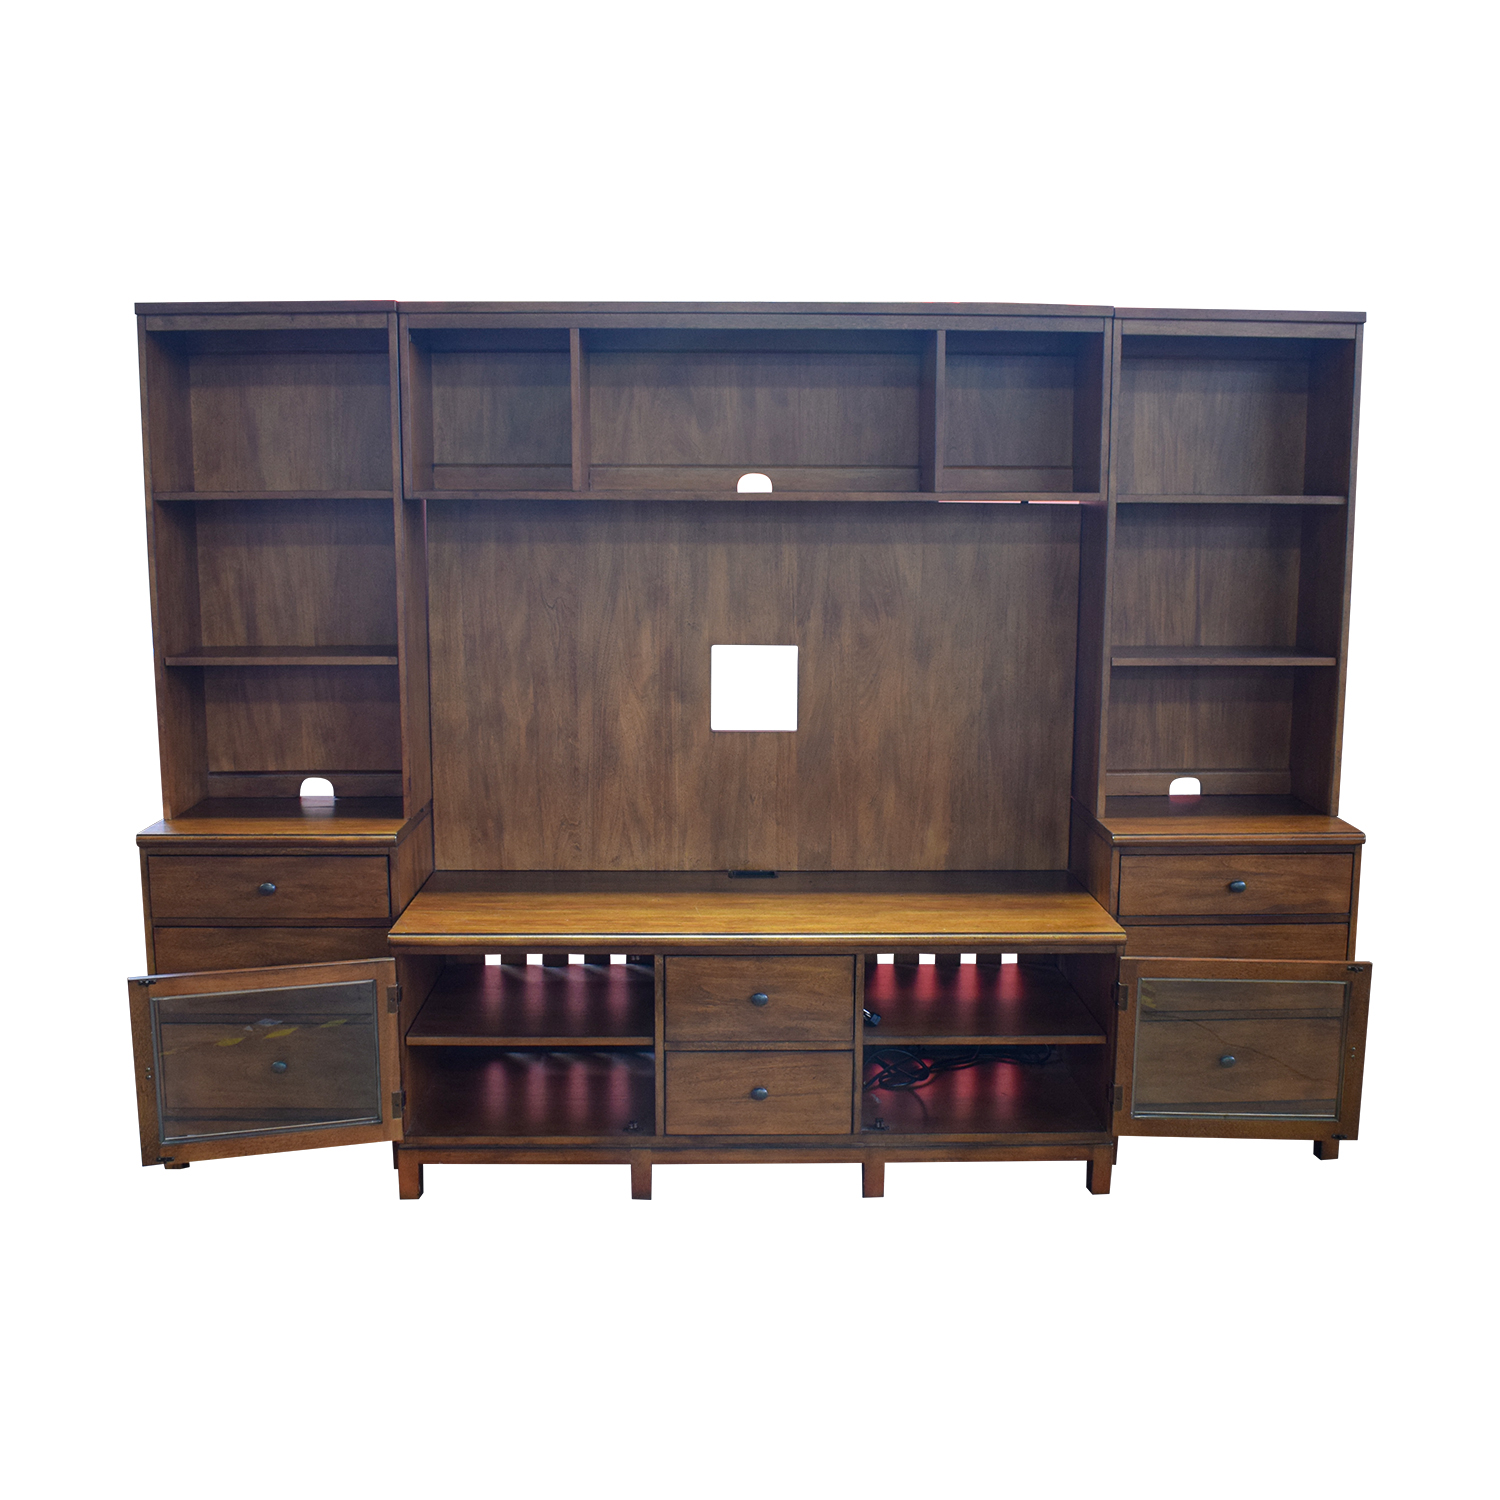 Ethan Allen Wood Media Center with Drawers and Shelves Ethan Allen